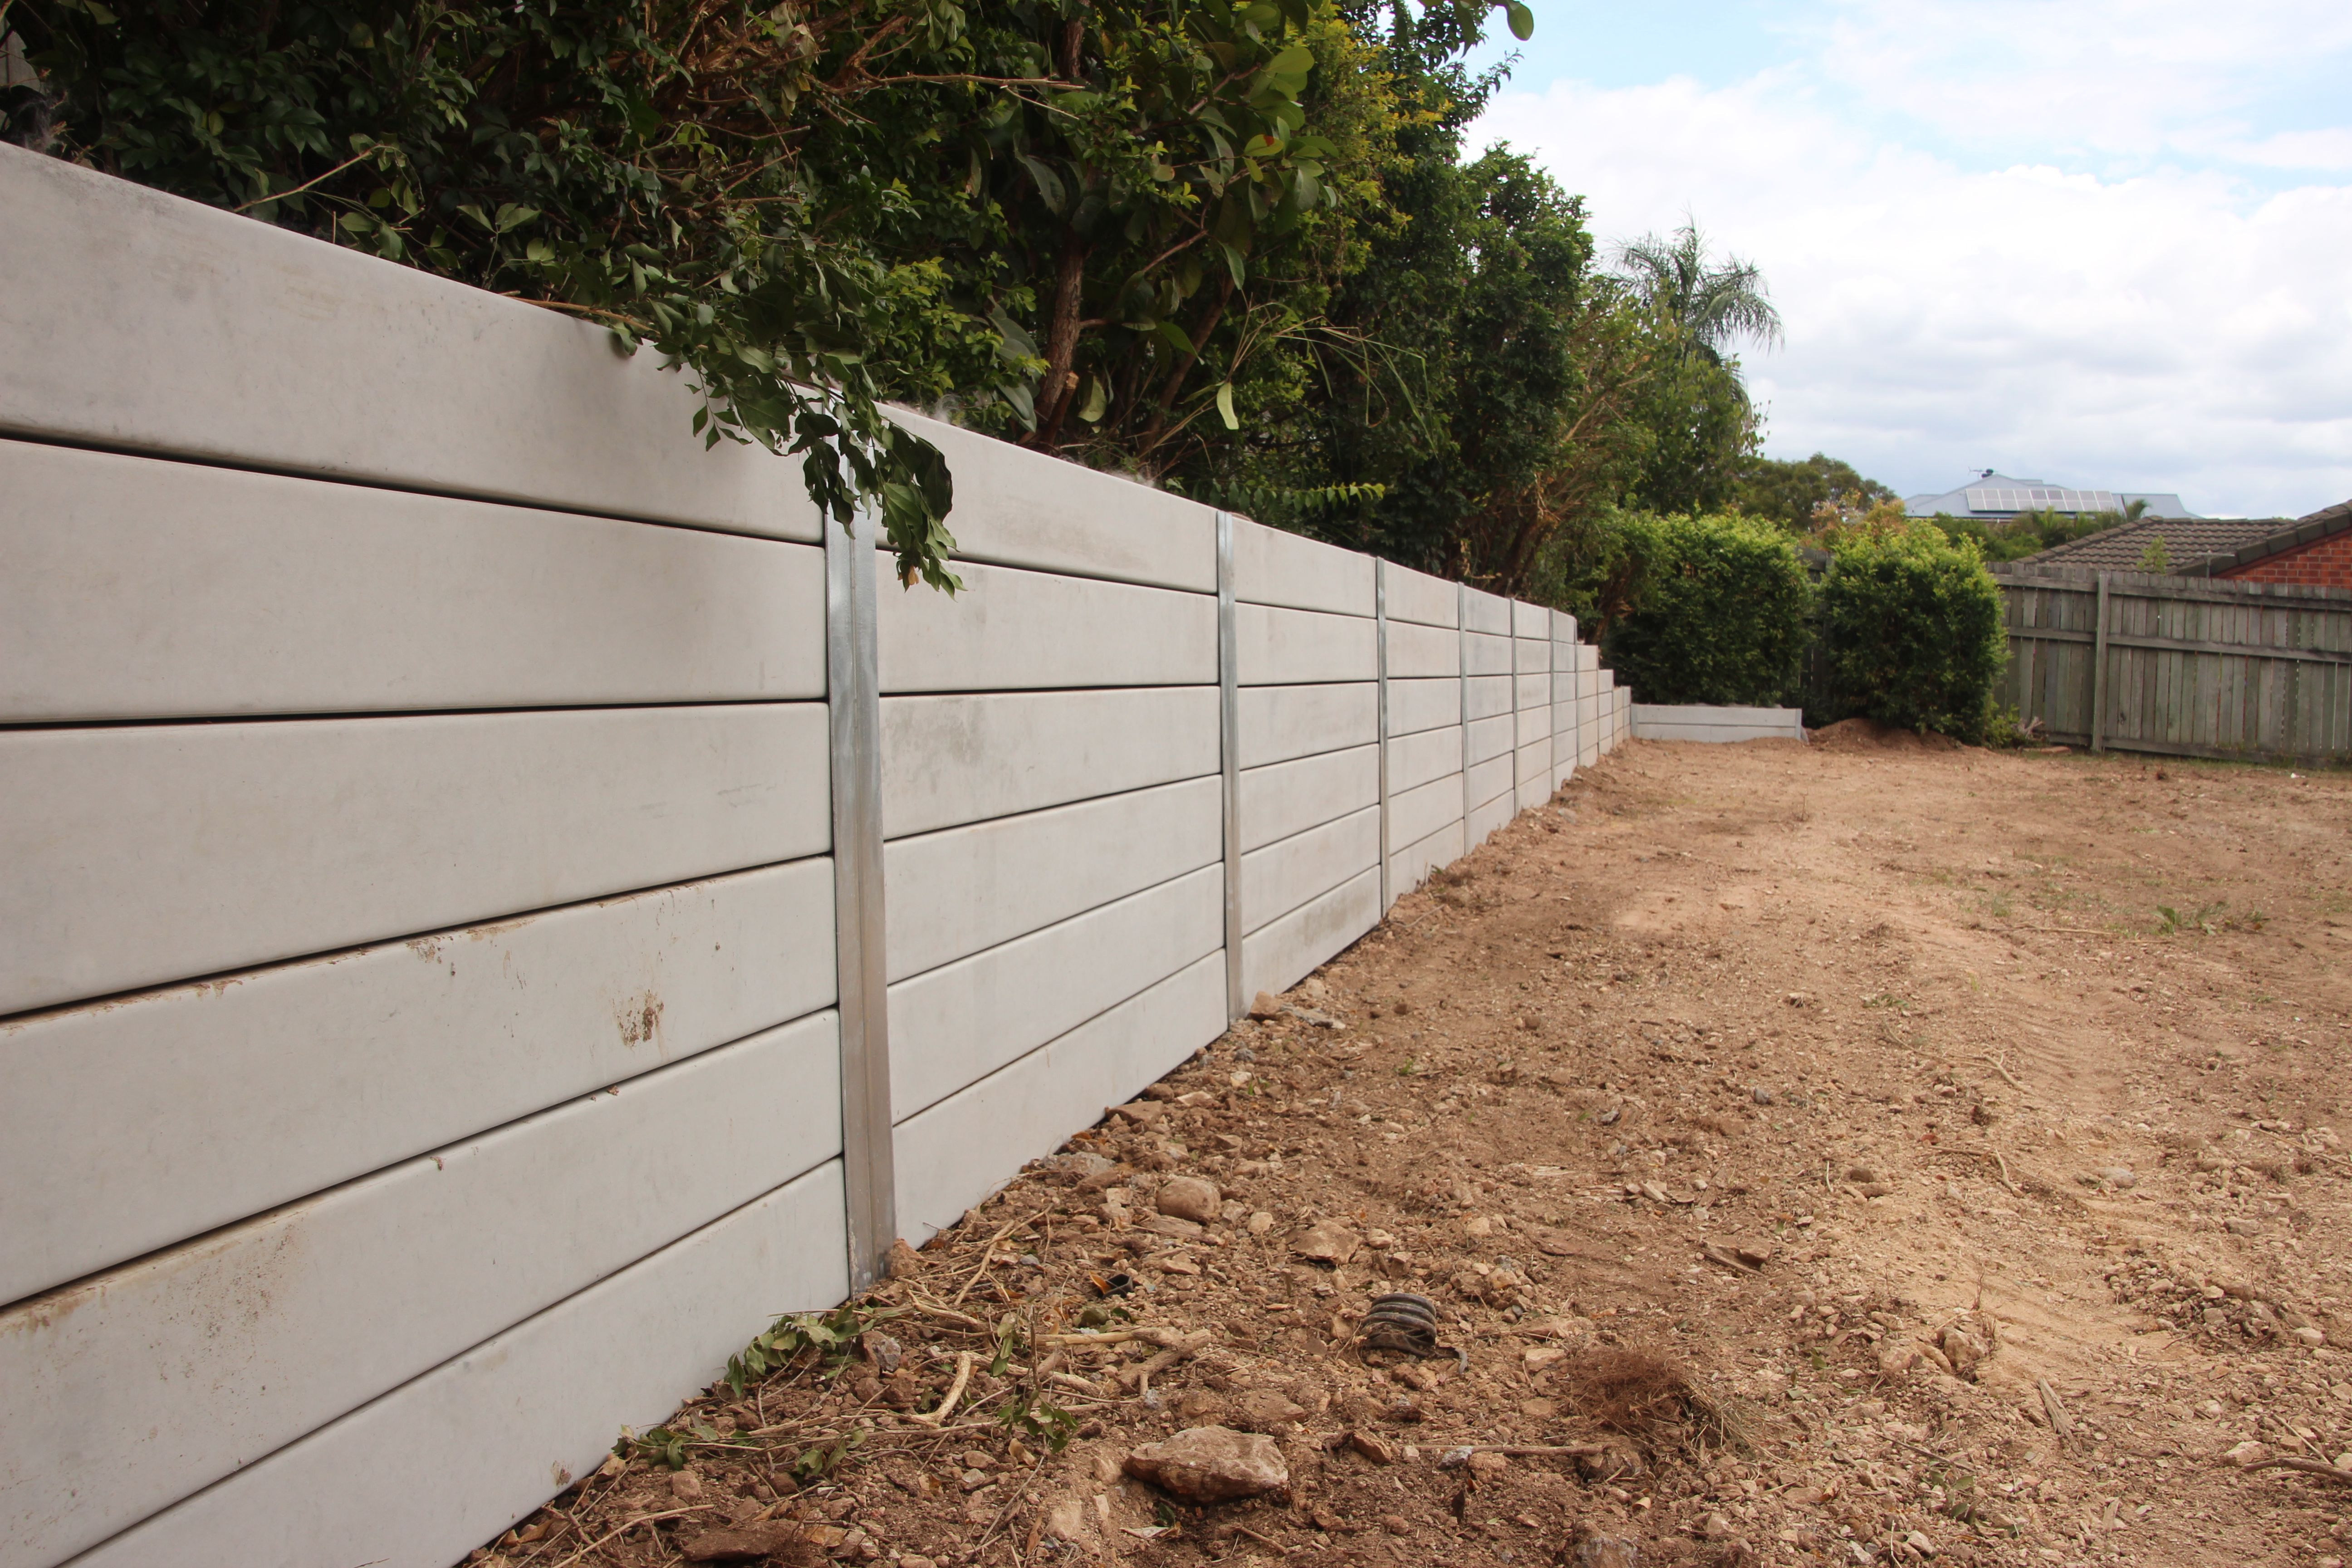 Pioneer Smooth Grey Concrete Sleeper Retaining Wall Visit Www Aussieconcreteproducts Co Backyard Retaining Walls Concrete Sleeper Retaining Walls Fence Design